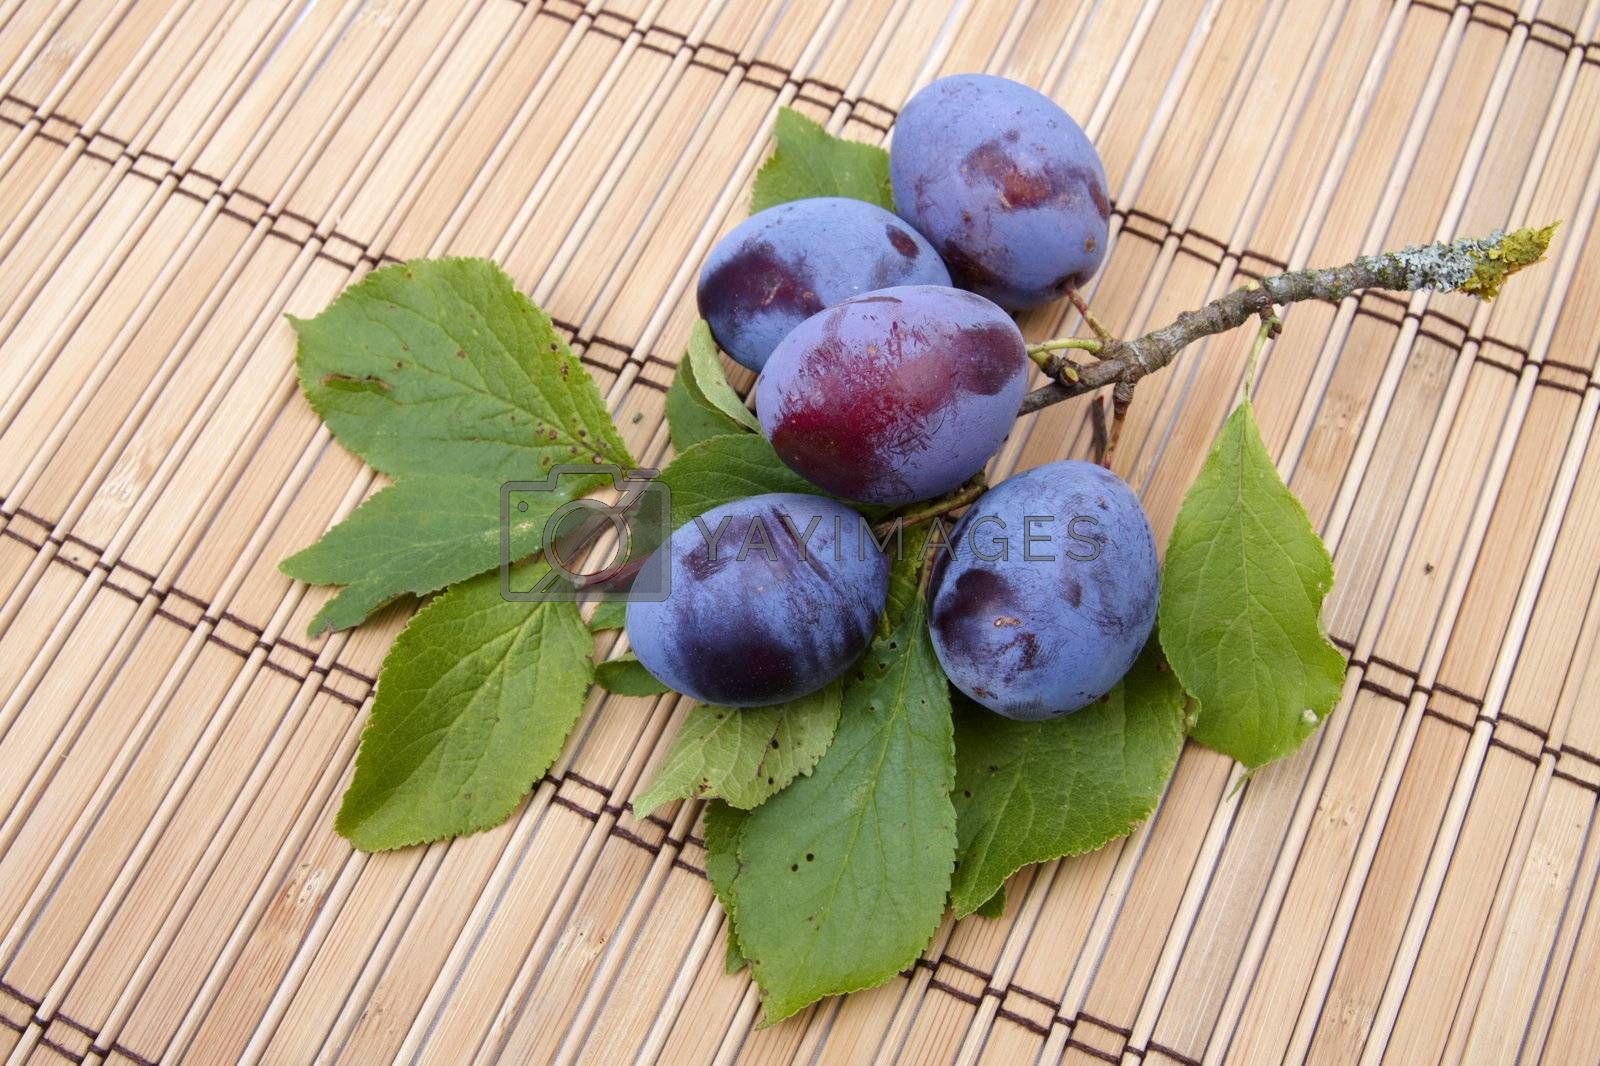 Plum branch on wooden napkins. Closeup image